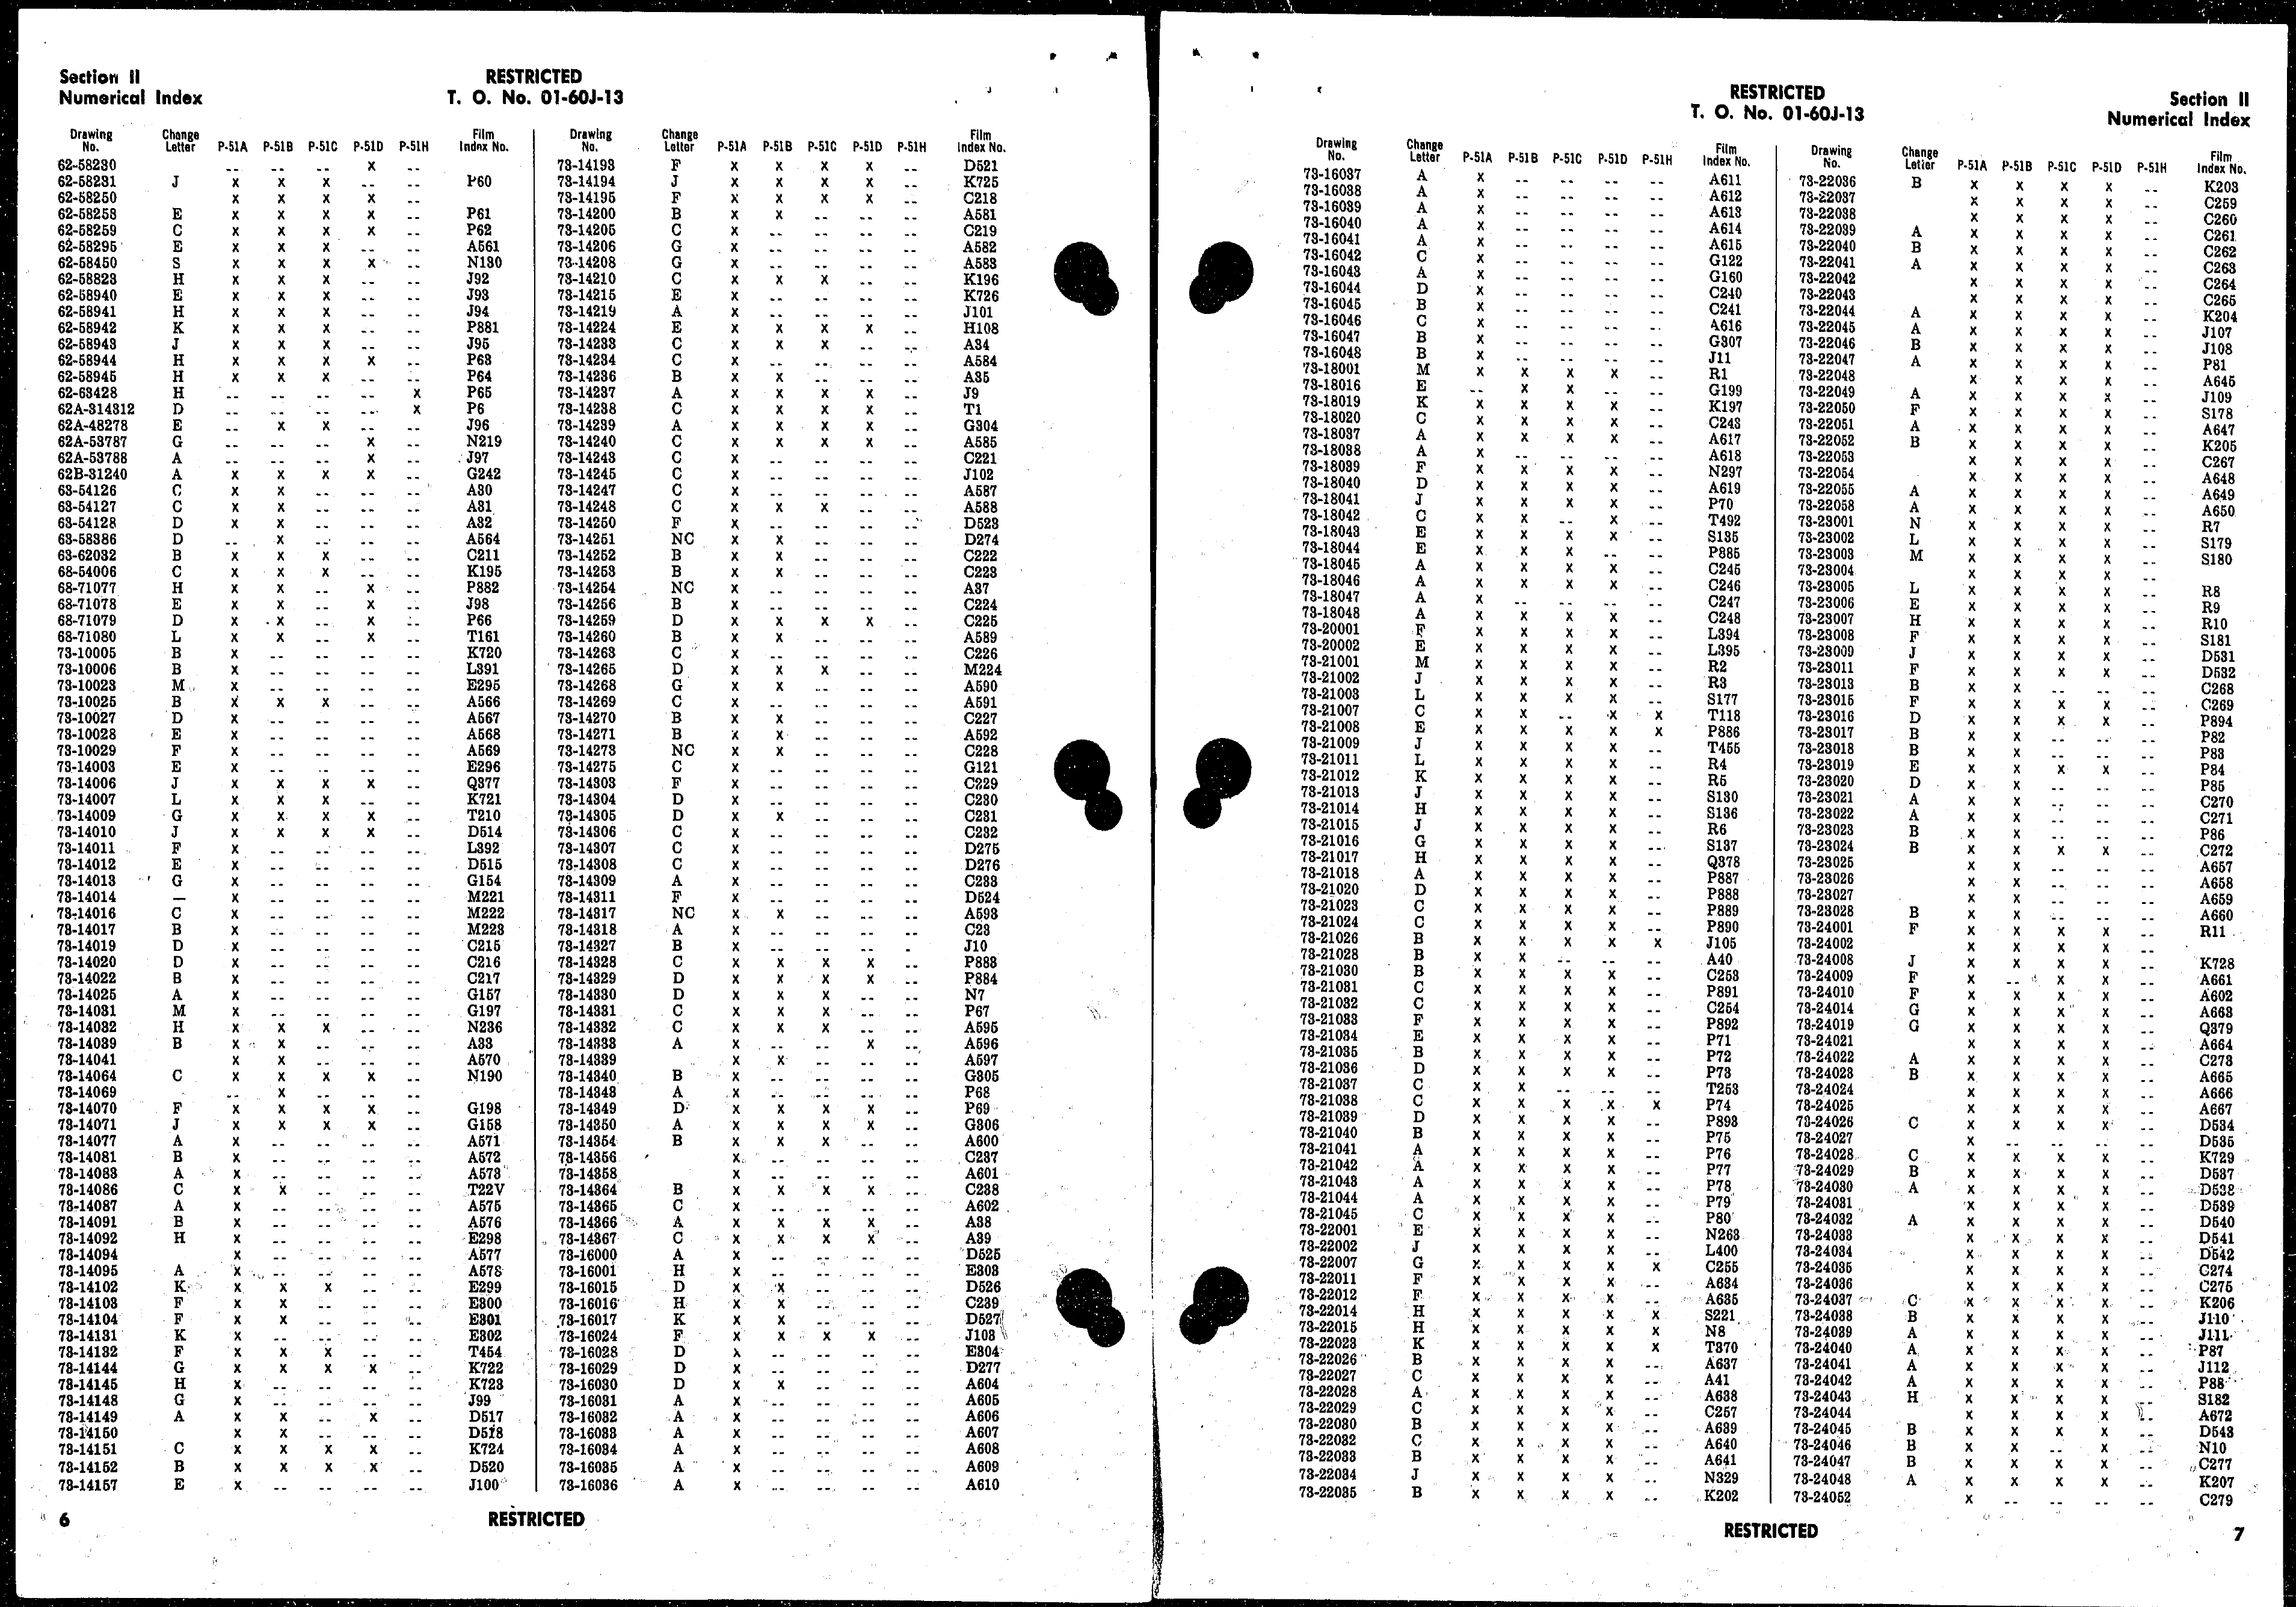 Sample page 5 from AirCorps Library document: Index of Drawings on Microfilm for Model P-51 Series Aircraft